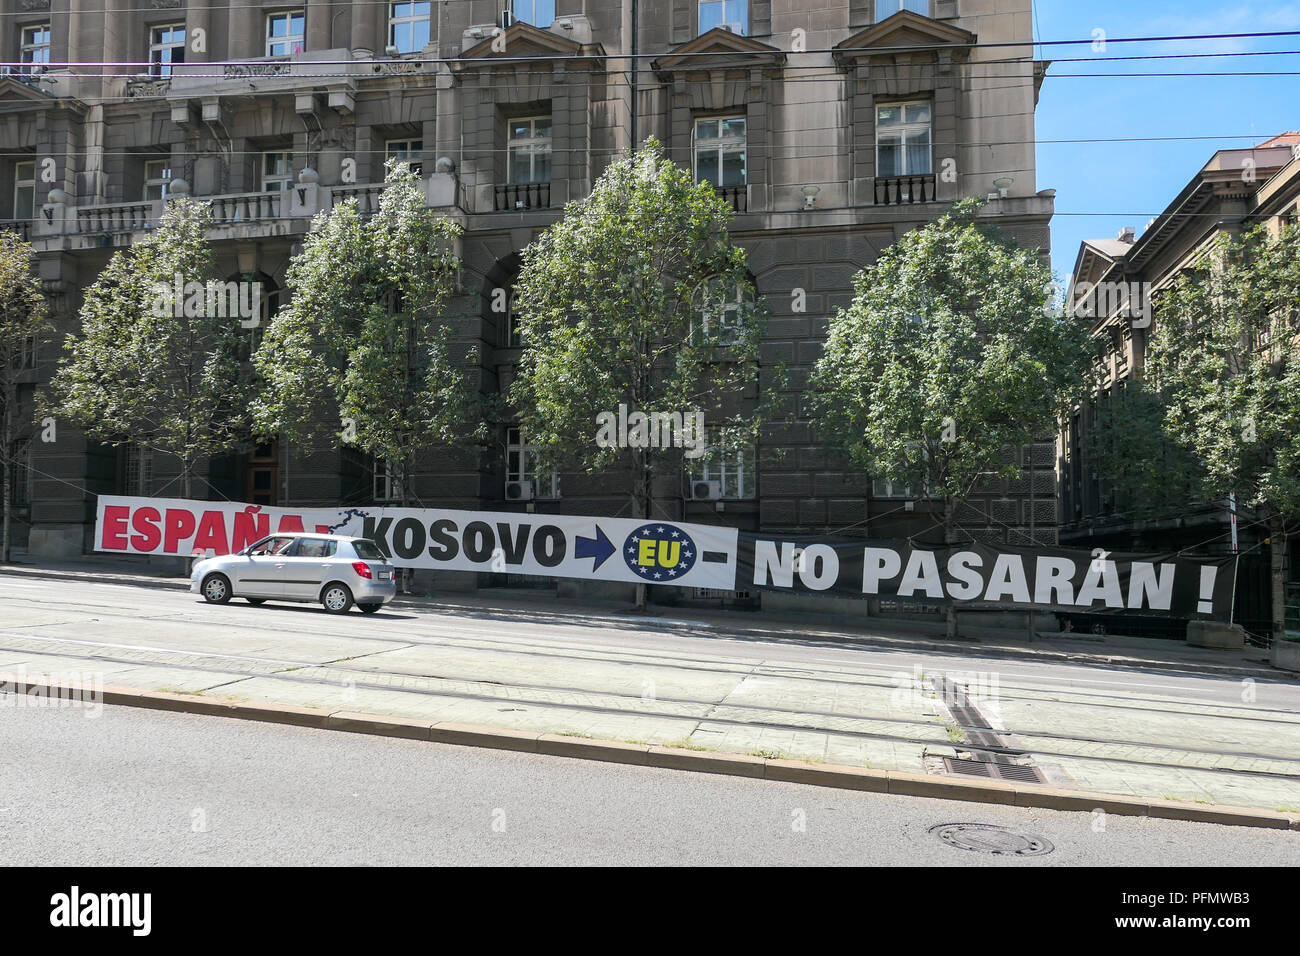 'Espana - Kosovo - EU - No Pasaran' banner in Belgrade, Serbia - objecting to Kosovo being admitted to the EU - Stock Image